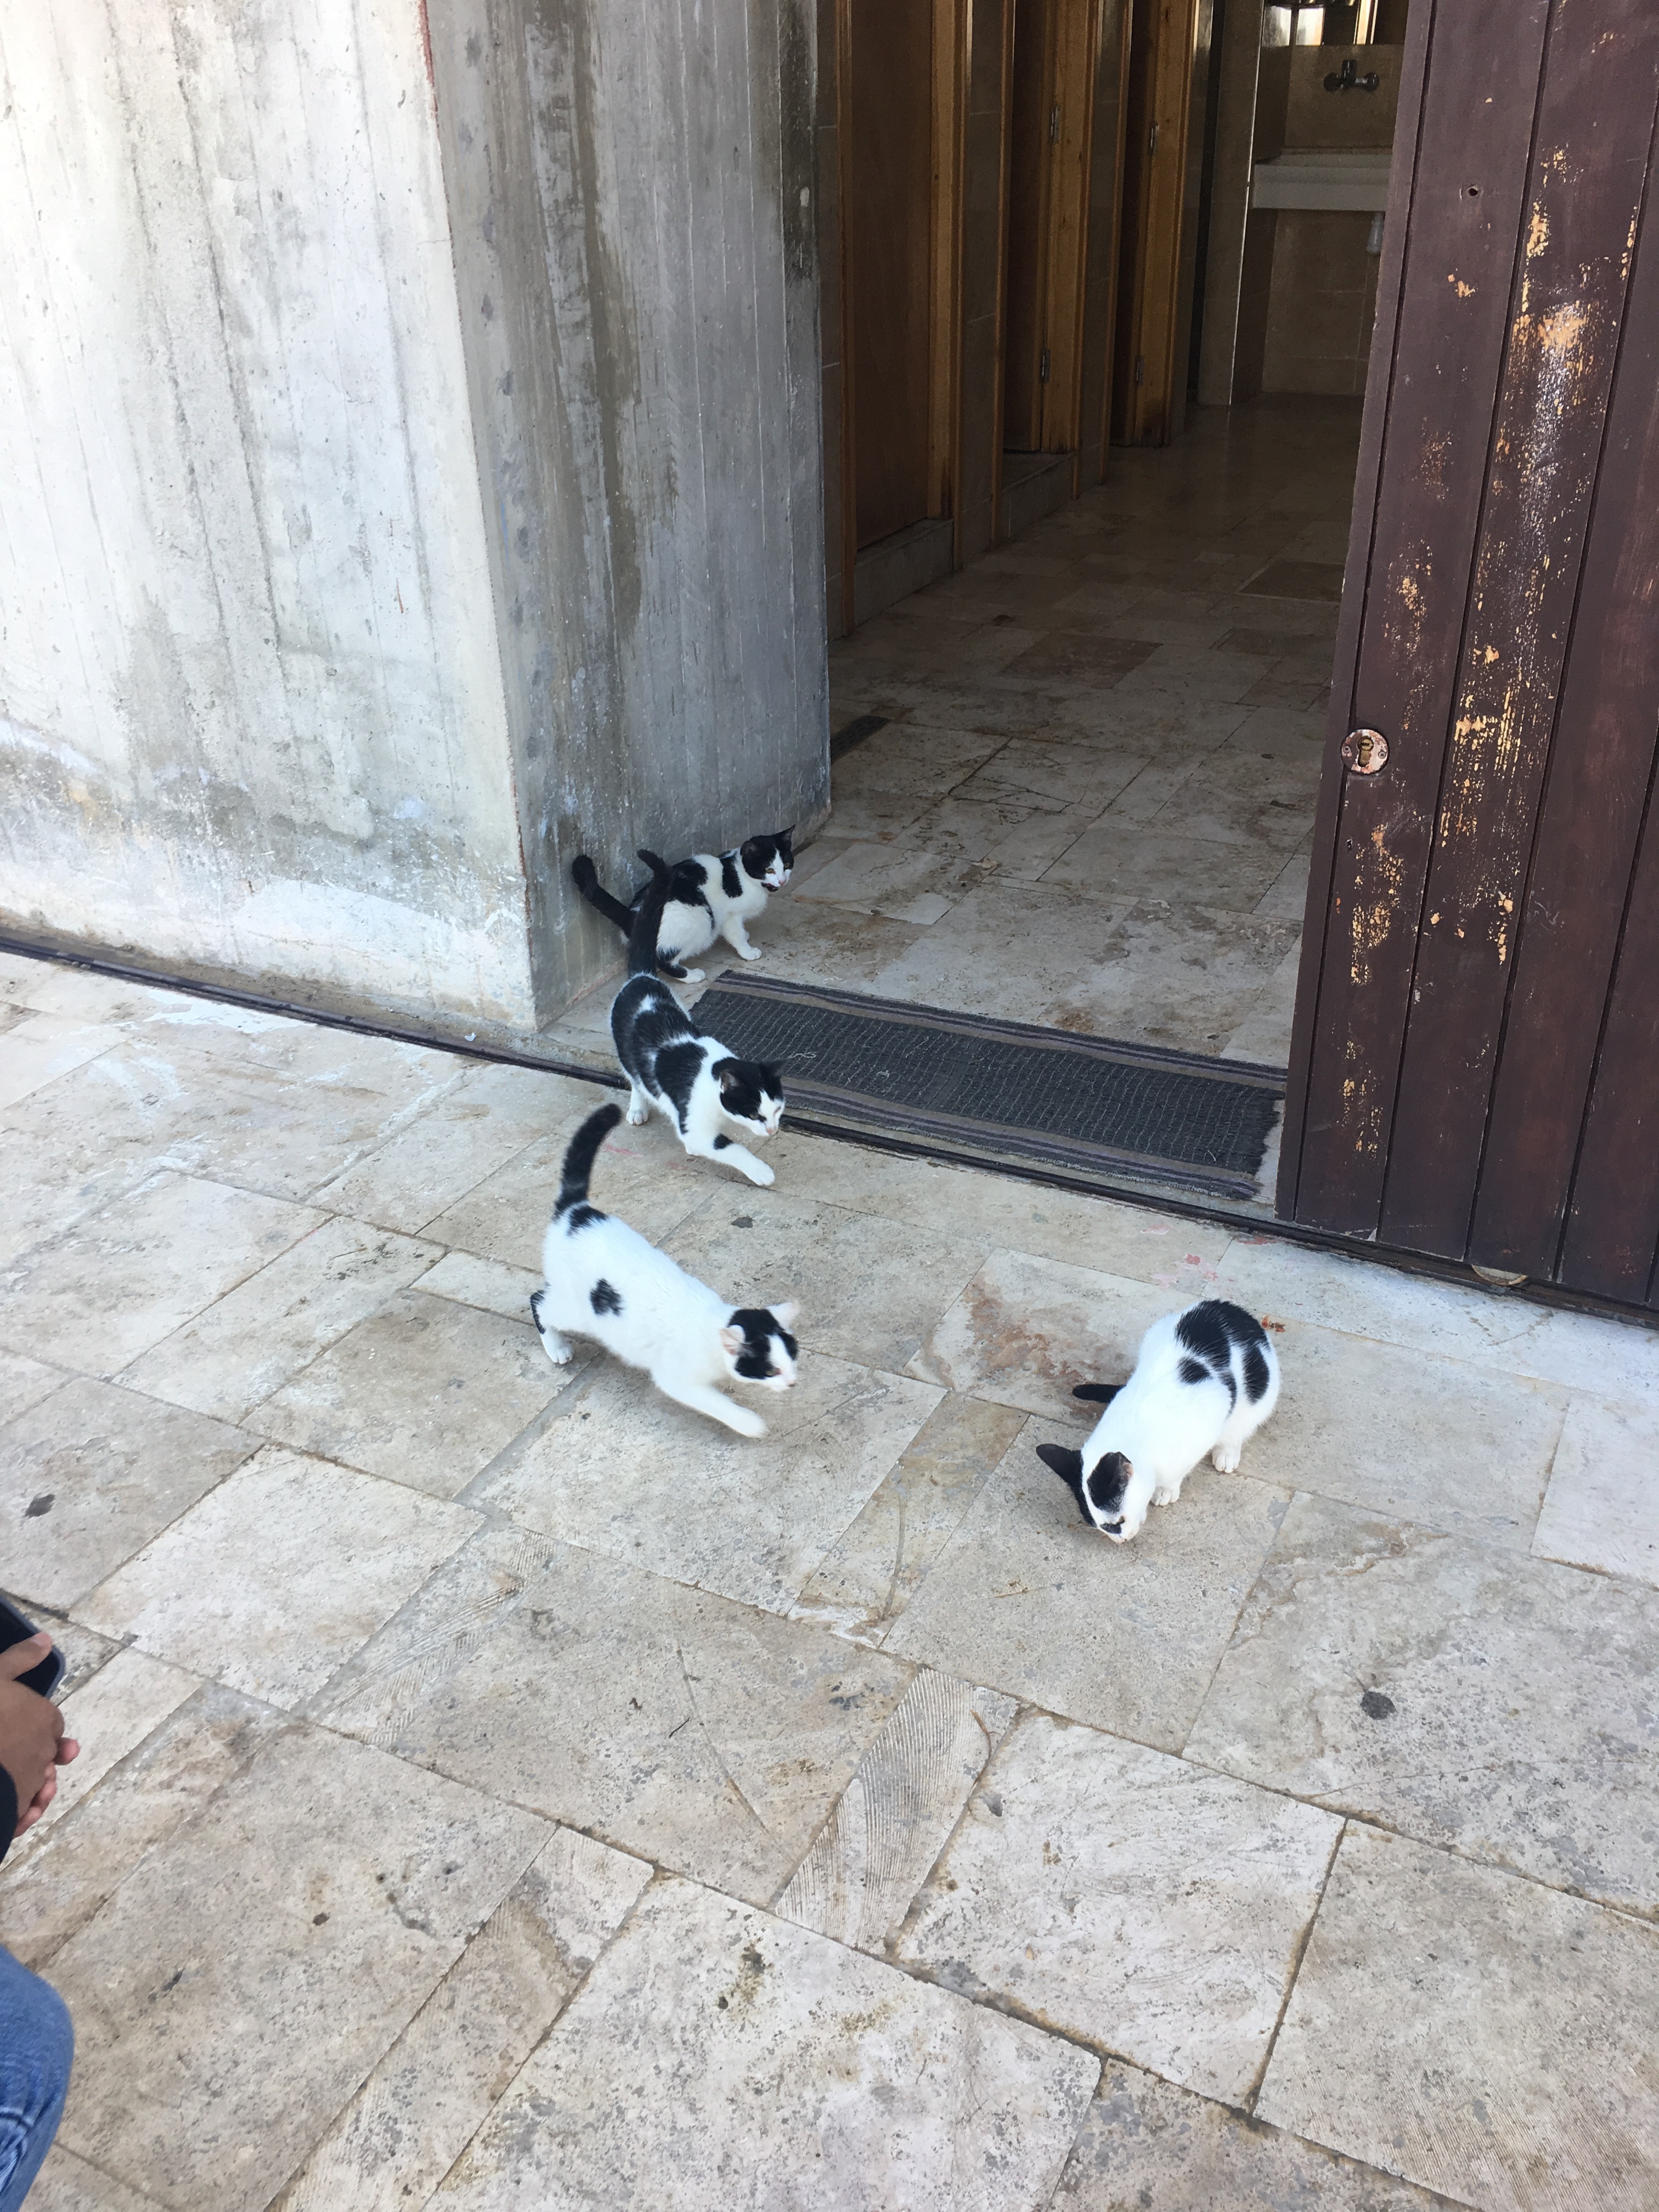 A herd of black and white kittens